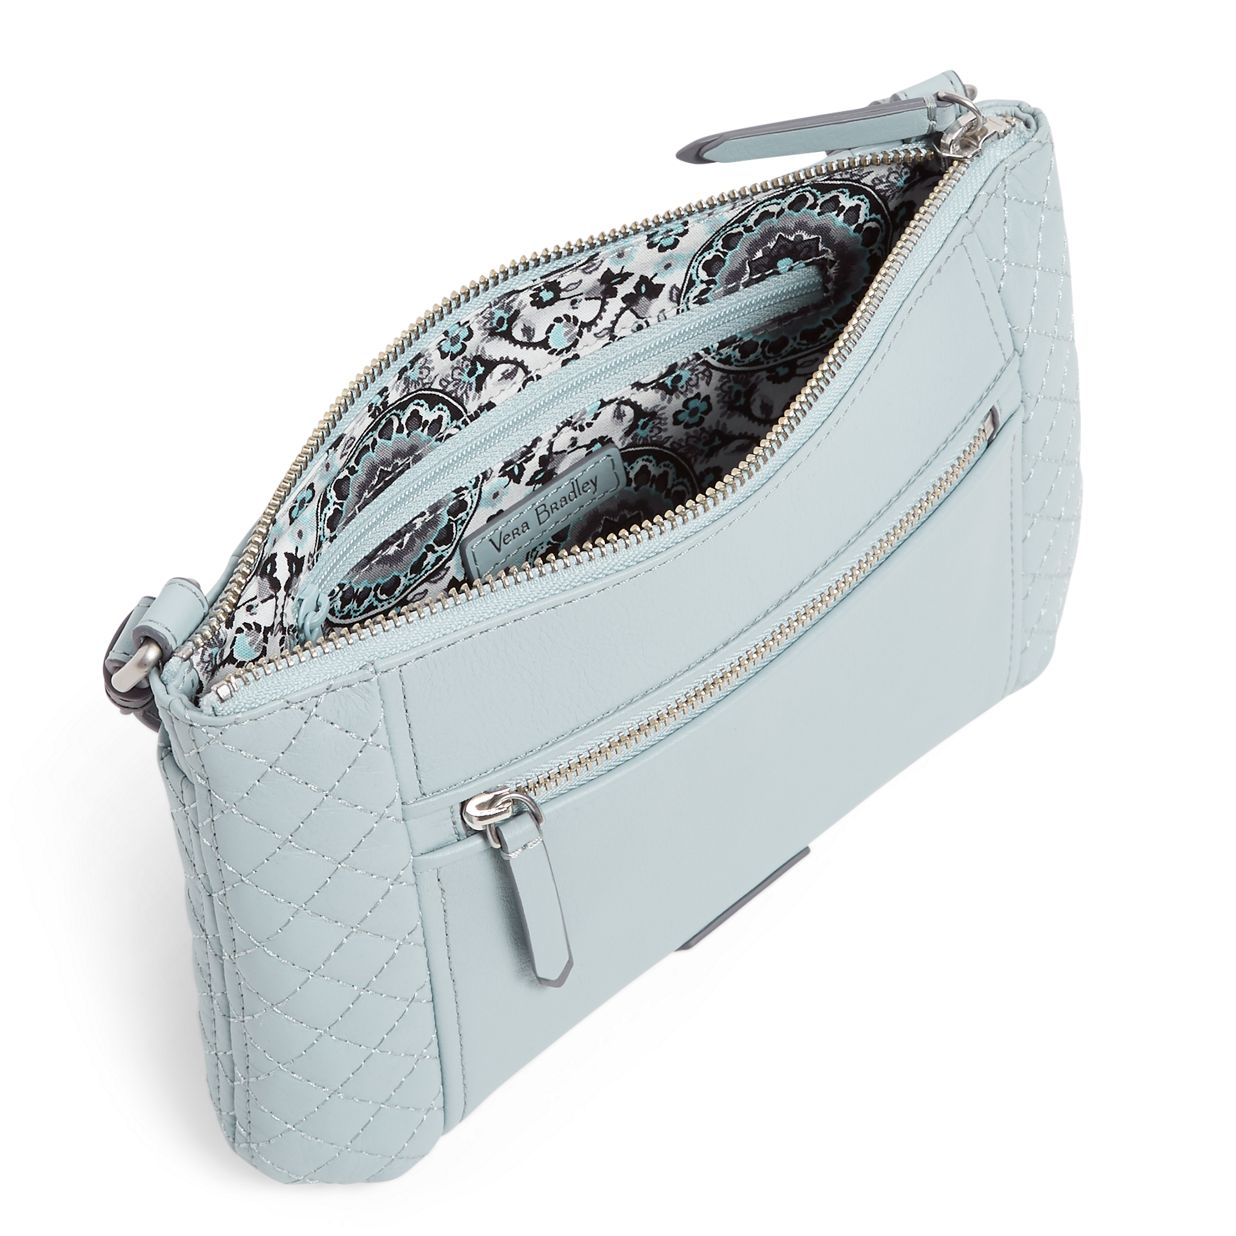 bb108cb43 ... Image of Carryall Small Crossbody in Dusty Blue